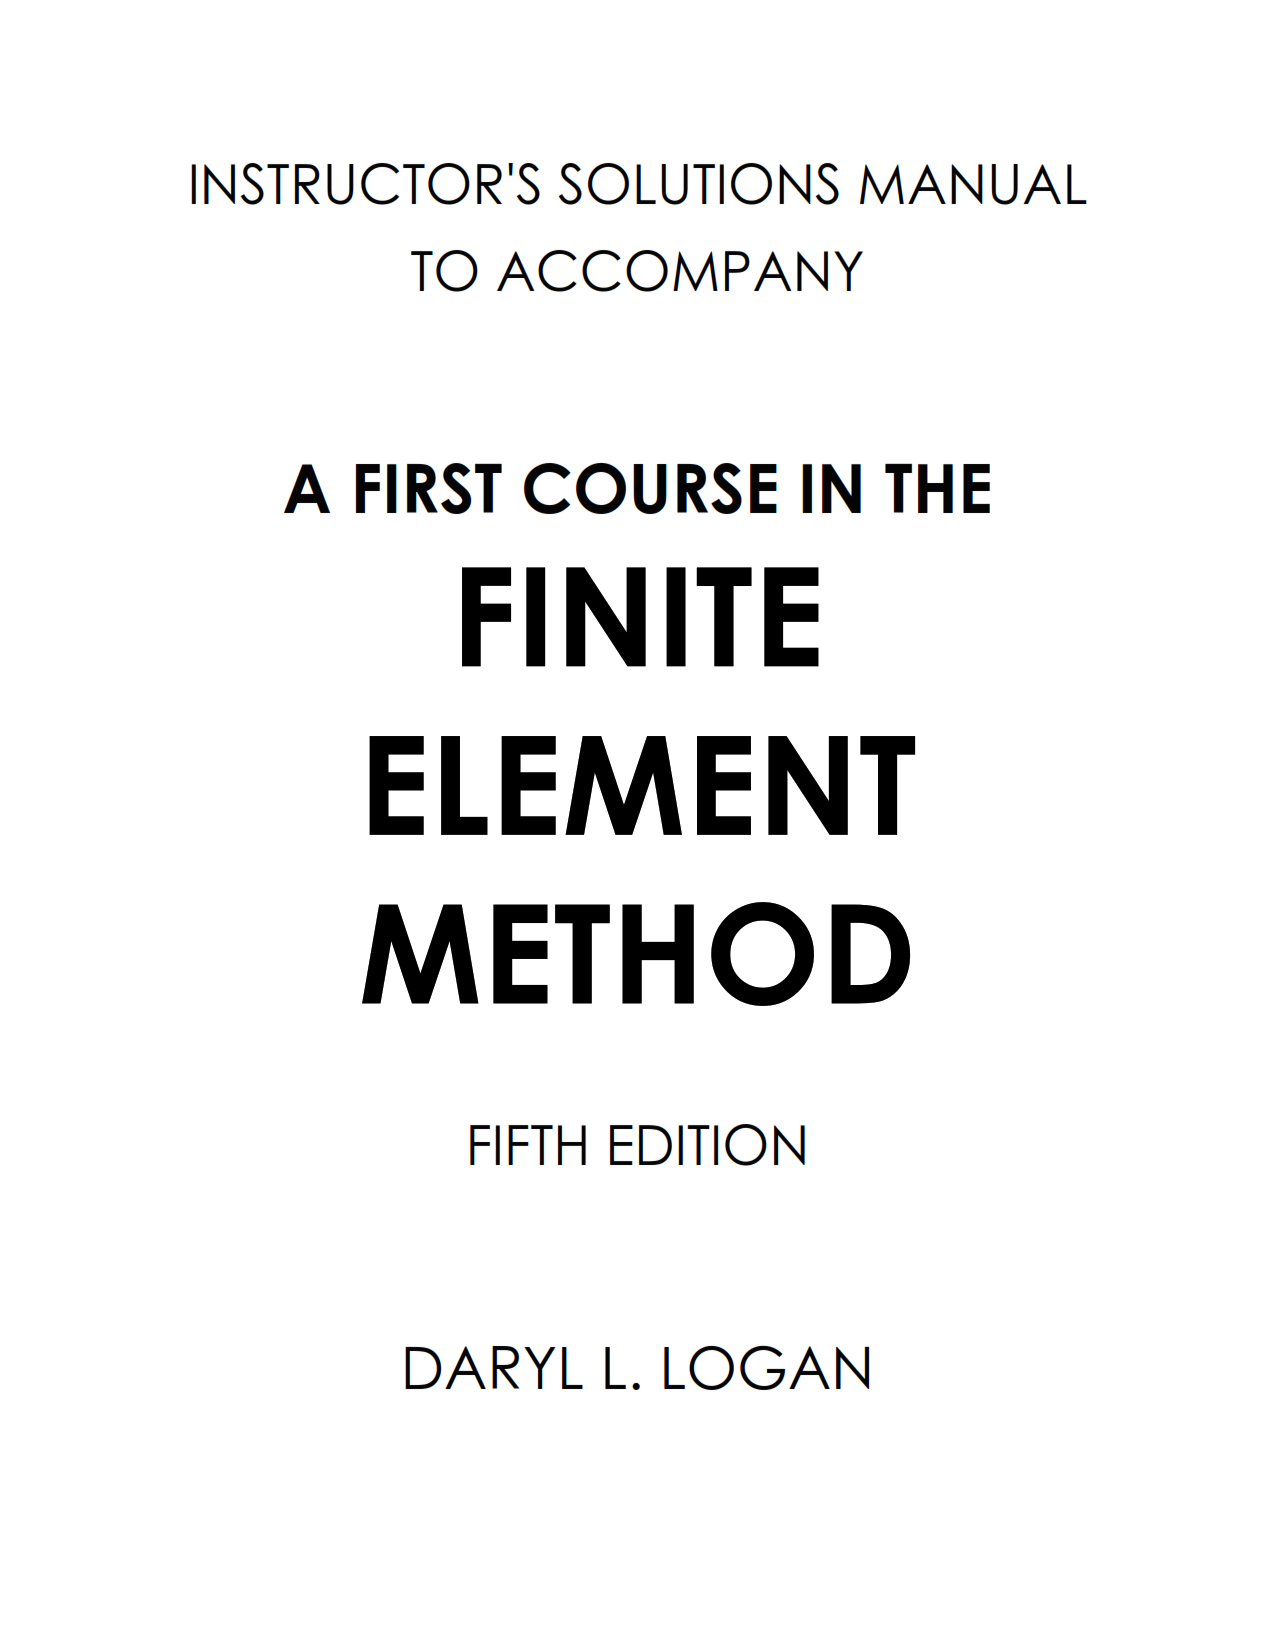 download free A First Course in the Finite Element Method 5th edition solution Manual & answers written by Daryl L. Logan eBook pdf